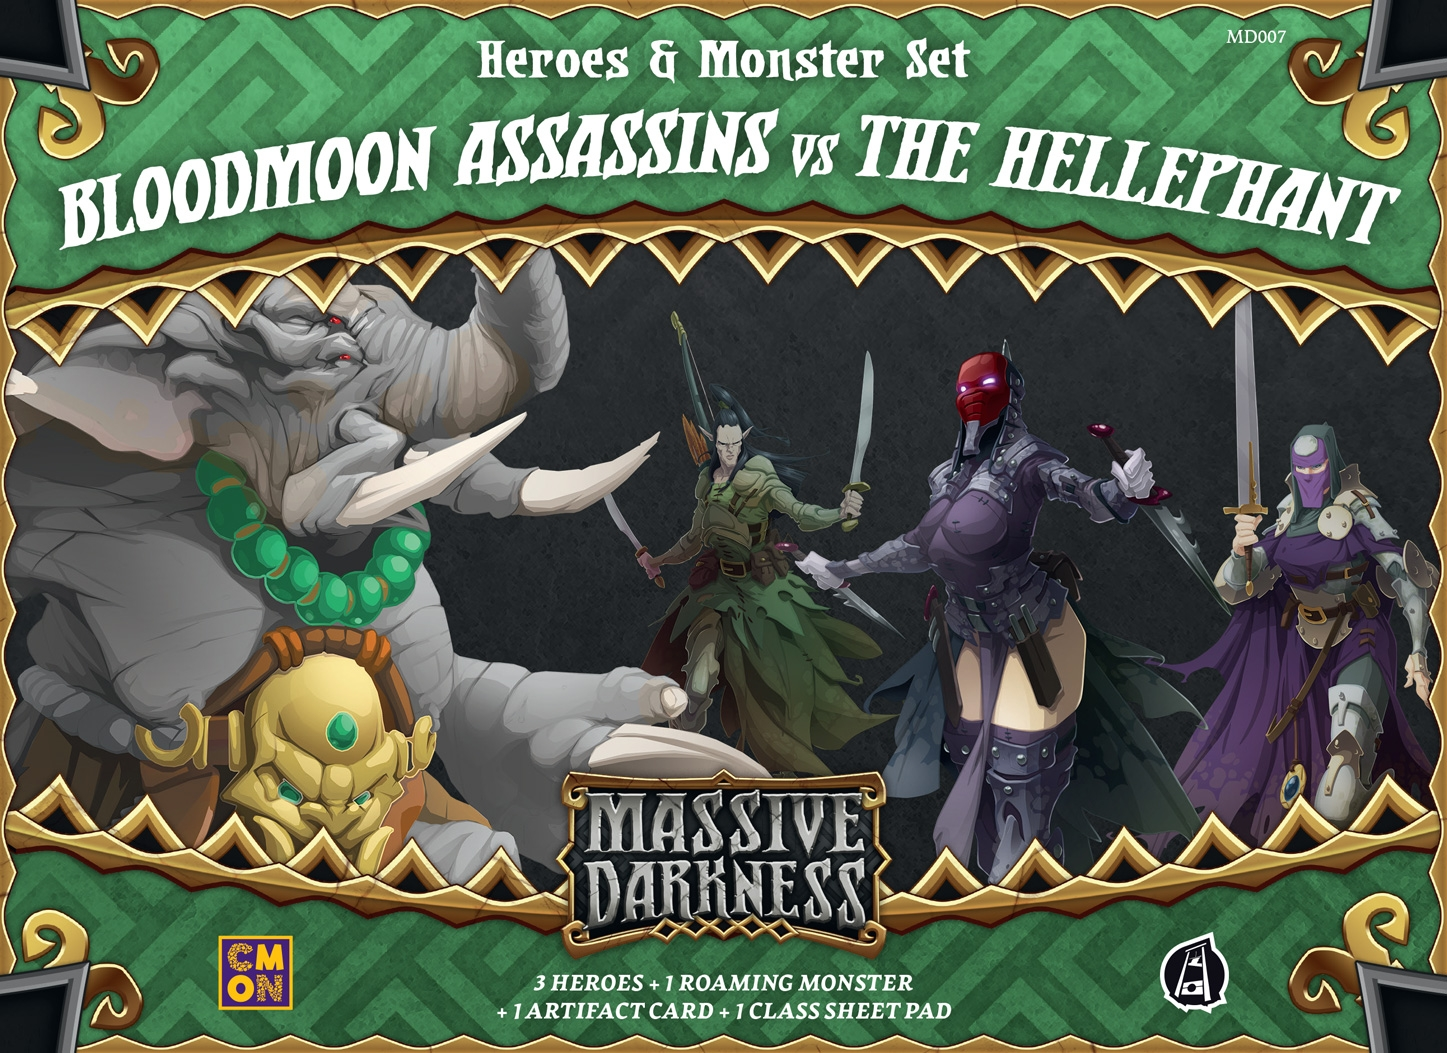 Massive Darkness: Heroes & Monster Set: Bloodmoon Assassins vs The Hellephant